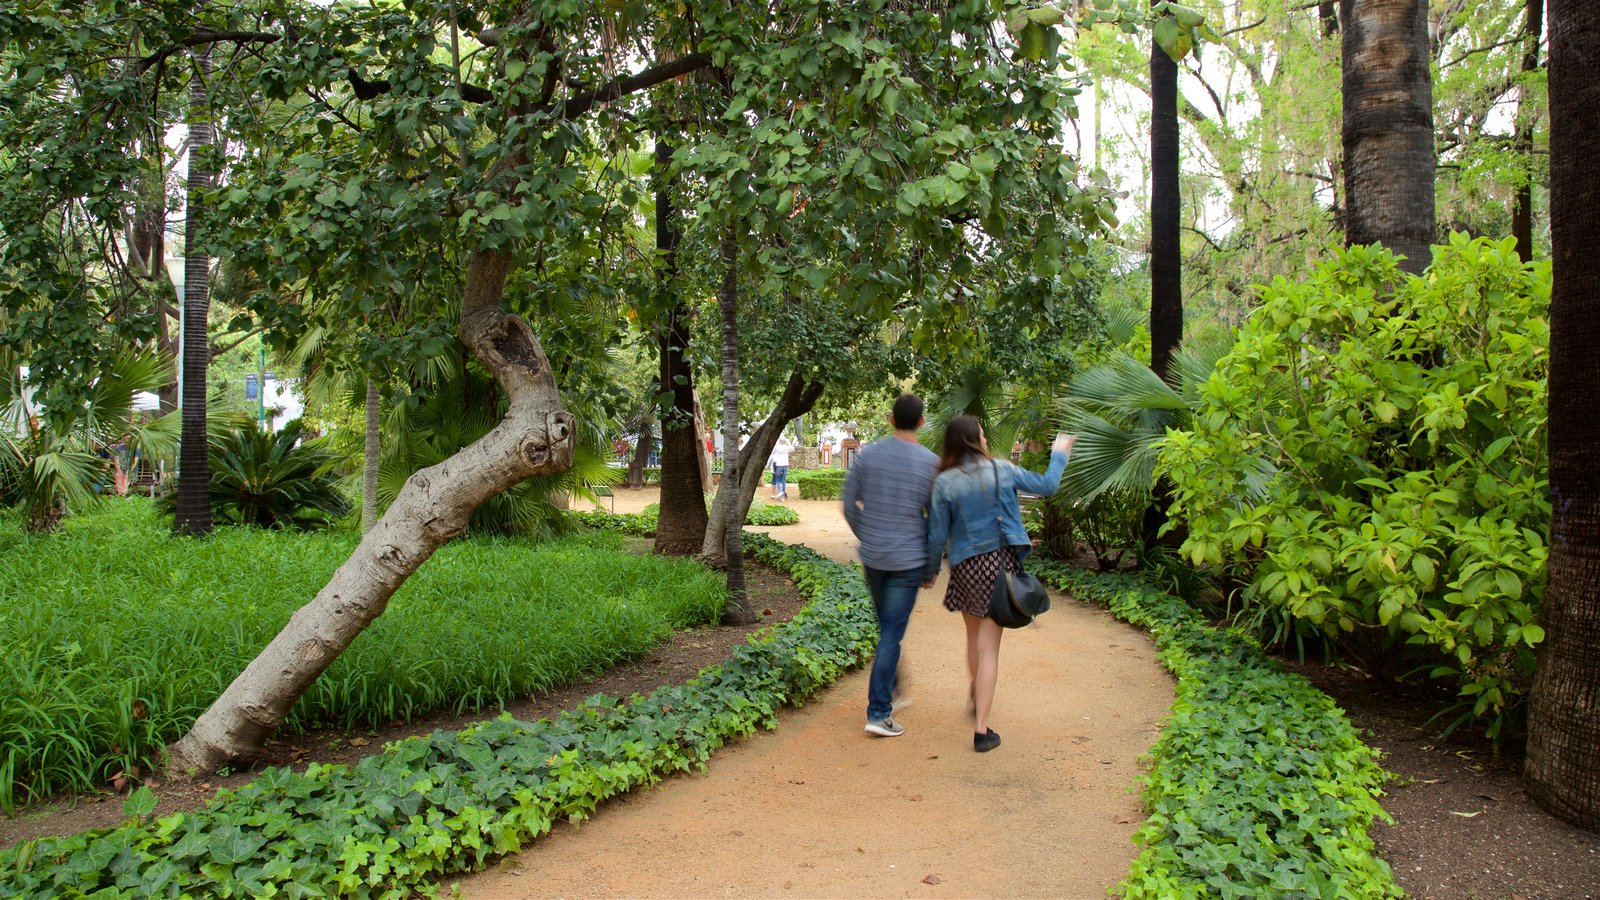 Tajo\'s Tree-Lined Avenue featuring hiking or walking and a park as well as a small group of people